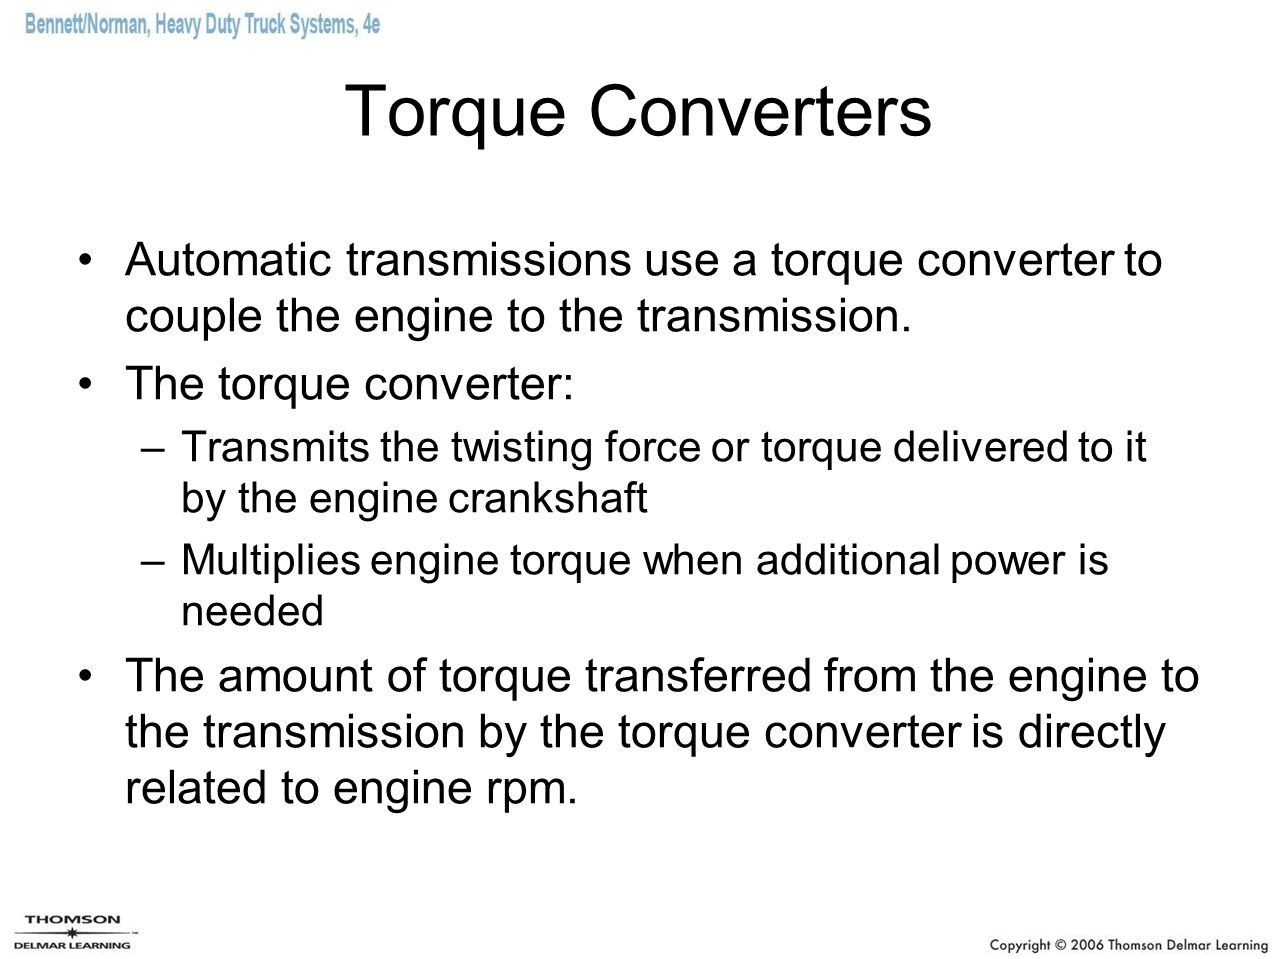 Chapter 17 Torque Converters Ppt Download